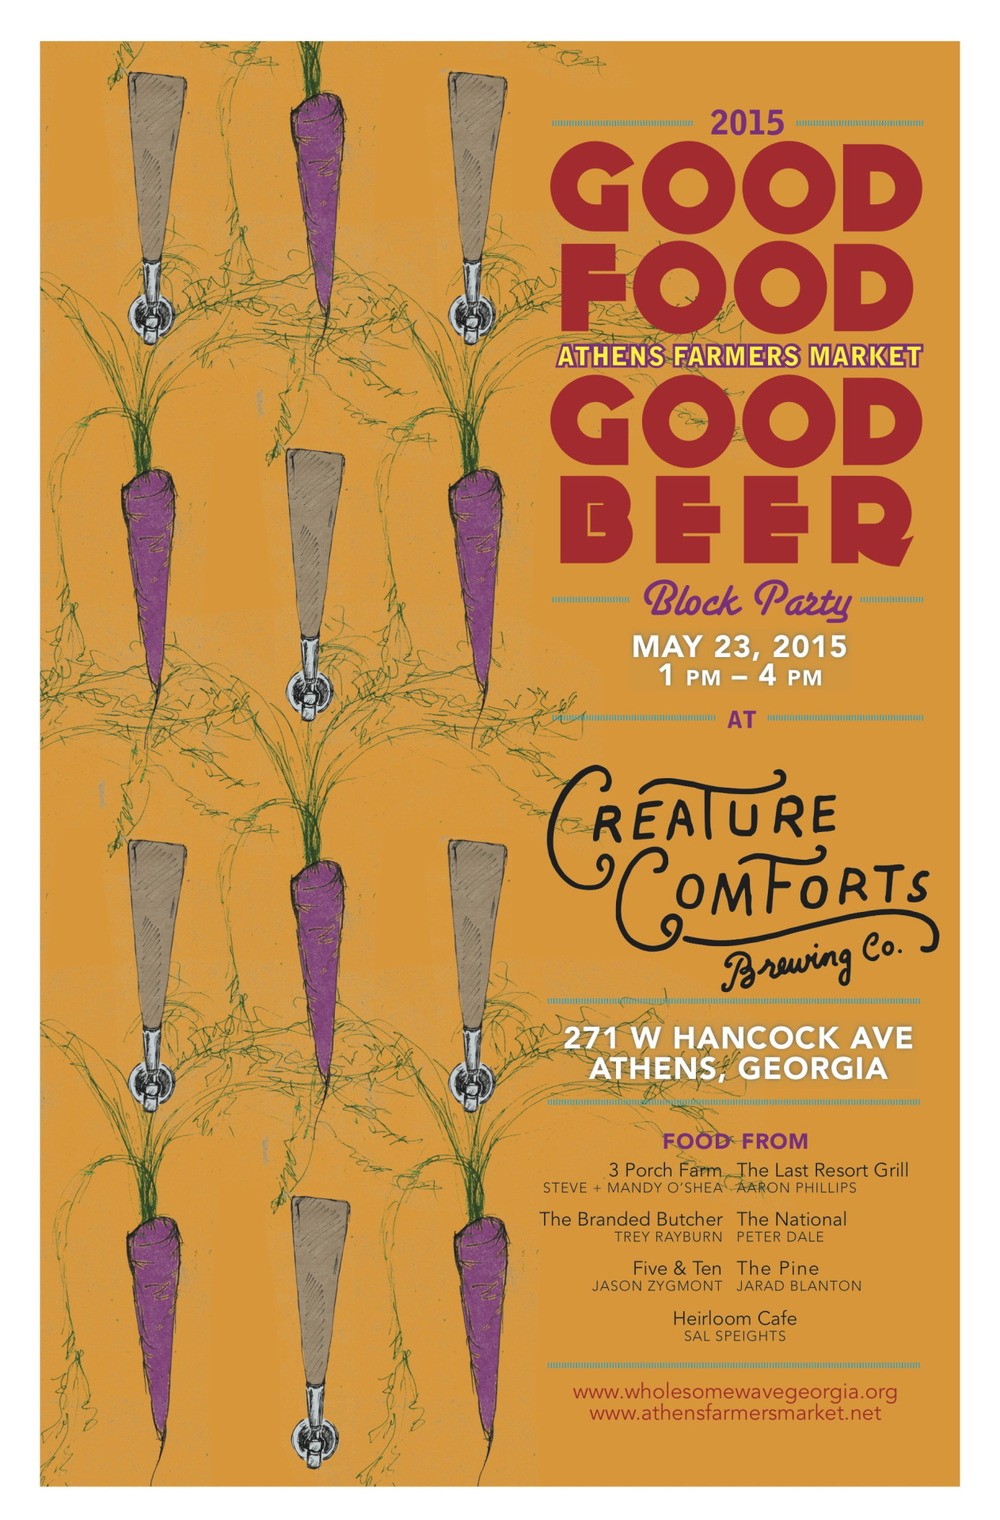 "Join us for good food, good beer, good people, and good music, all to benefit a good cause. All proceeds go to Wholesome Wave Georgia and the Athens Farmers Market SNAP doubling program. Sponsored and hosted by Creature Comforts Brewing Co. Entry to the event is $12 if you wish to drink beer. Food will be sold via tickets. You can purchase as many $1 tickets as you'd like, and then ""pay"" the chefs with your tickets. Dishes will range in price, but all will be under $10. BEER from Creature Comforts Brewing Co. MUSIC by DJ Osmose FOOD FROM: Jason Zygmont - Five & Ten Peter Dale - The National Joel Penn - Heirloom Cafe Aaron Phillips - The Last Resort Grill Jarad Blanton - The Pine Trey Rayburn - The Branded Butcher Mandy & Steve O'Shea - 3 Porch Farm"